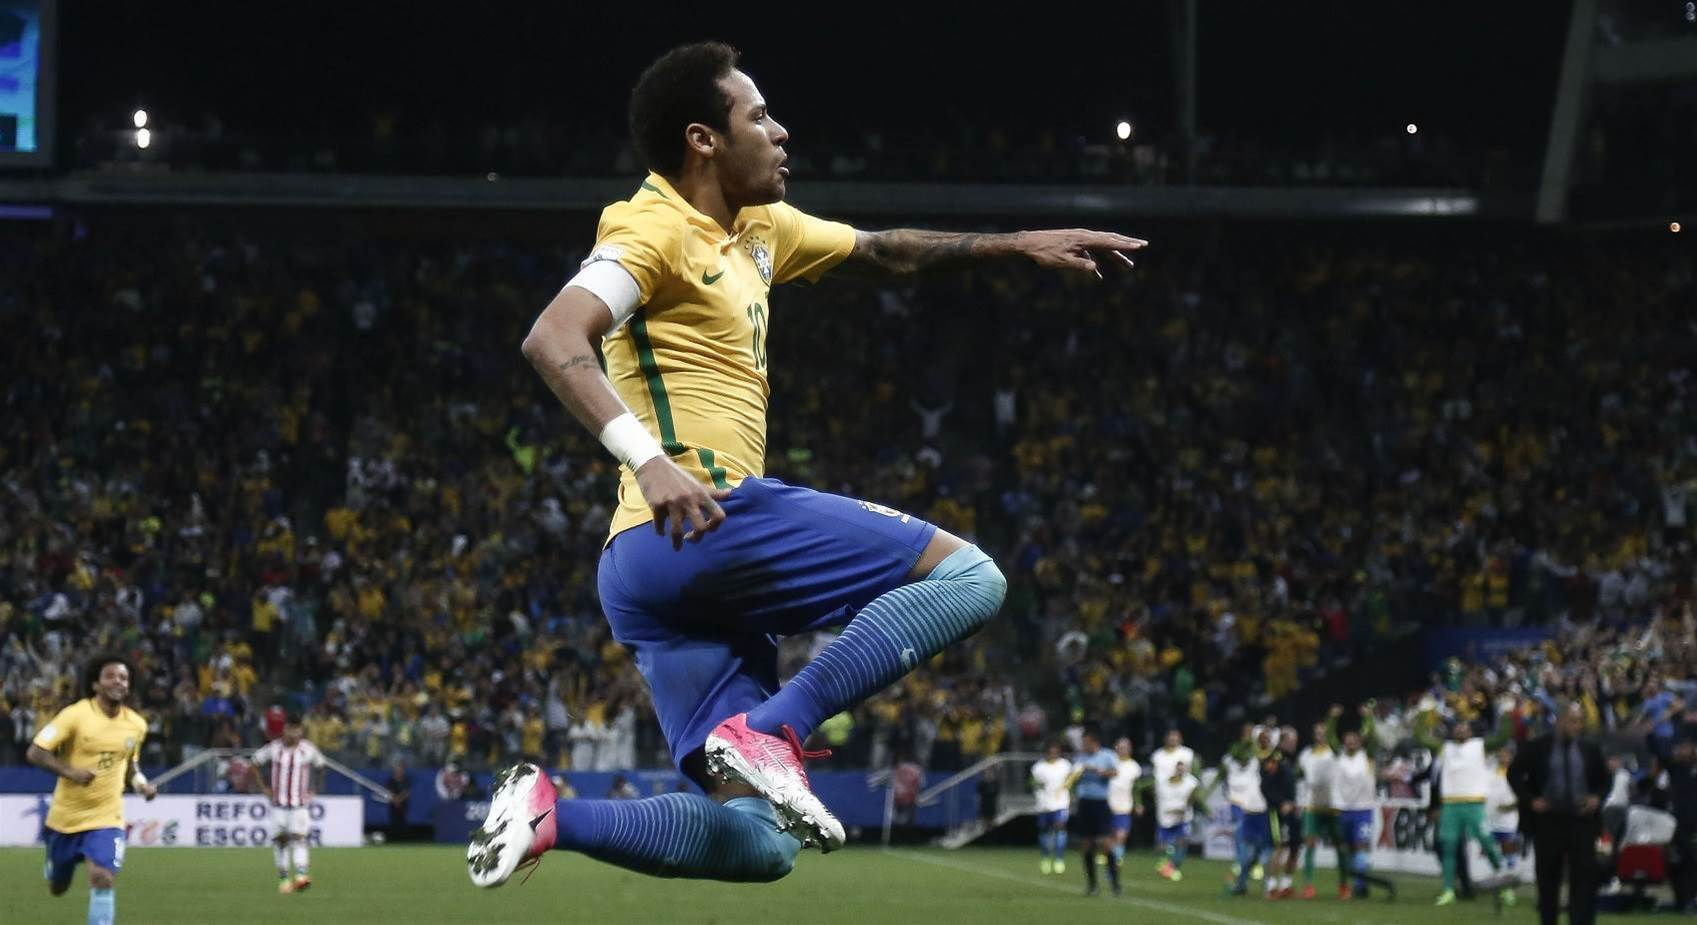 Organisers 'disappointed' by Neymar no-show